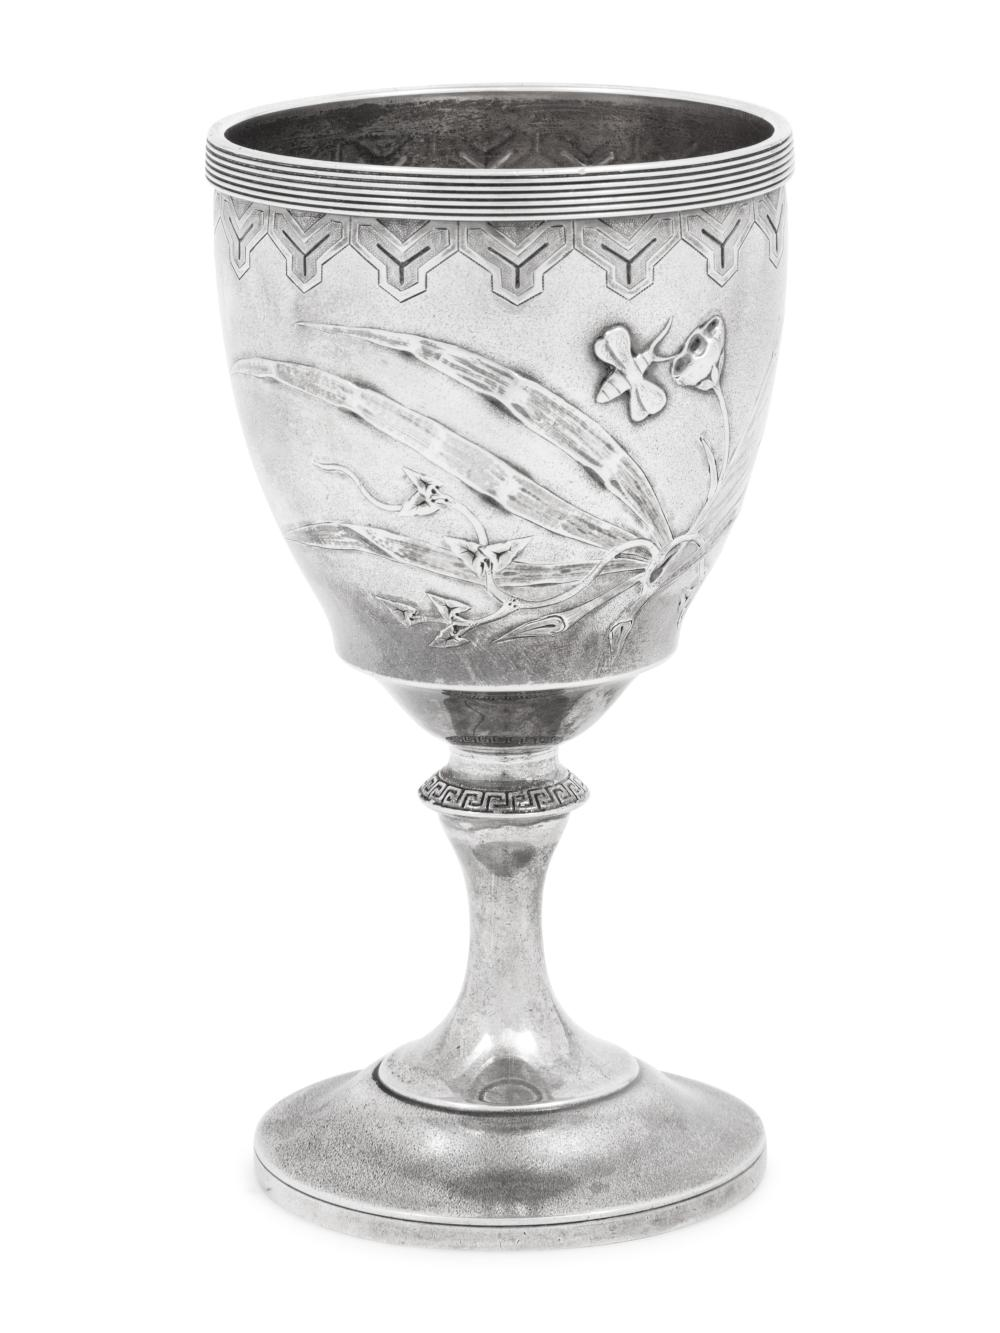 An American Aesthetic Movement Silver Chalice